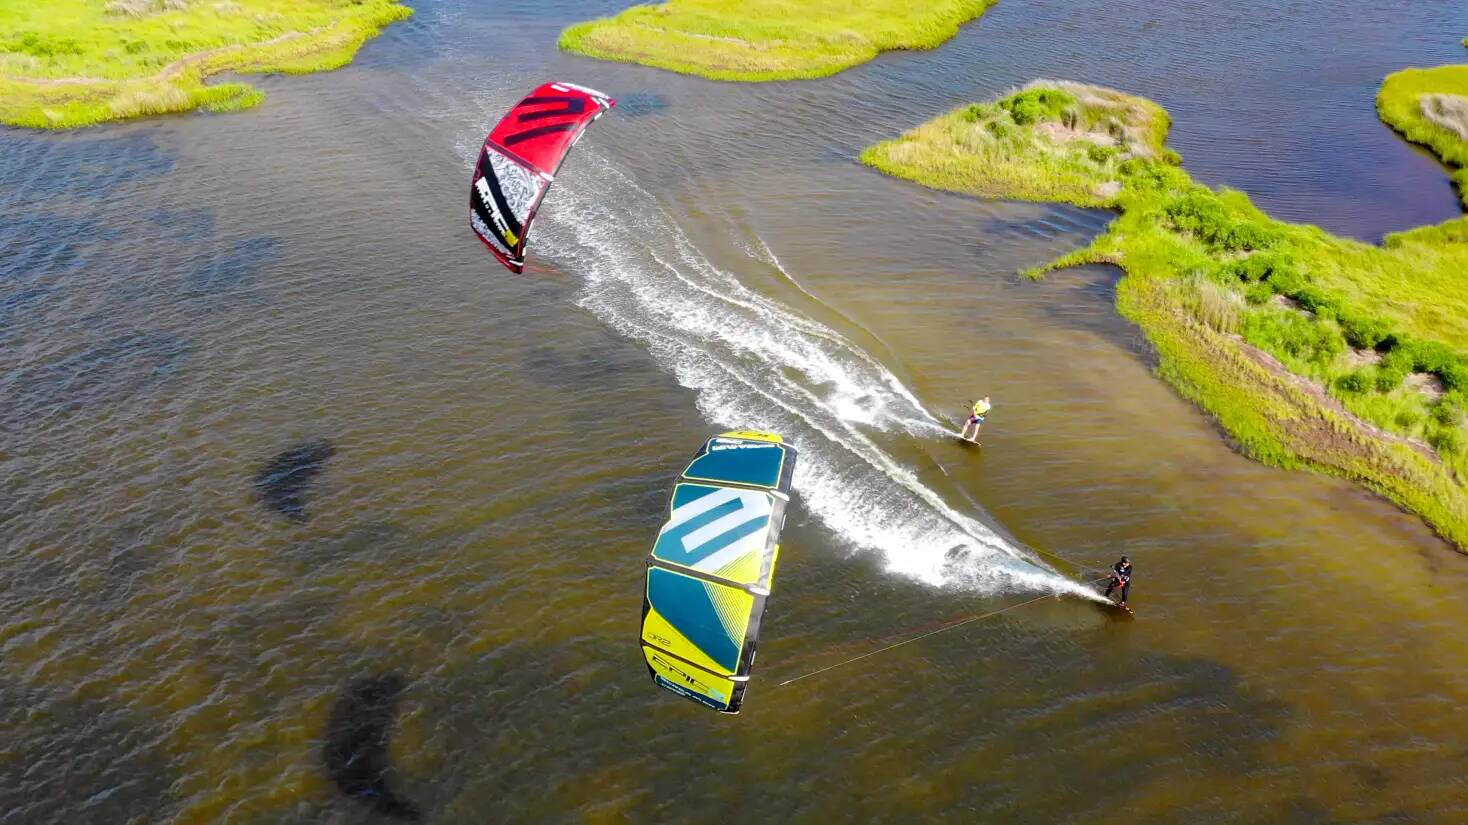 Dimitri Boot Camp with Navy Commander Robert Lopez - with Epic Kites Kiteboarding